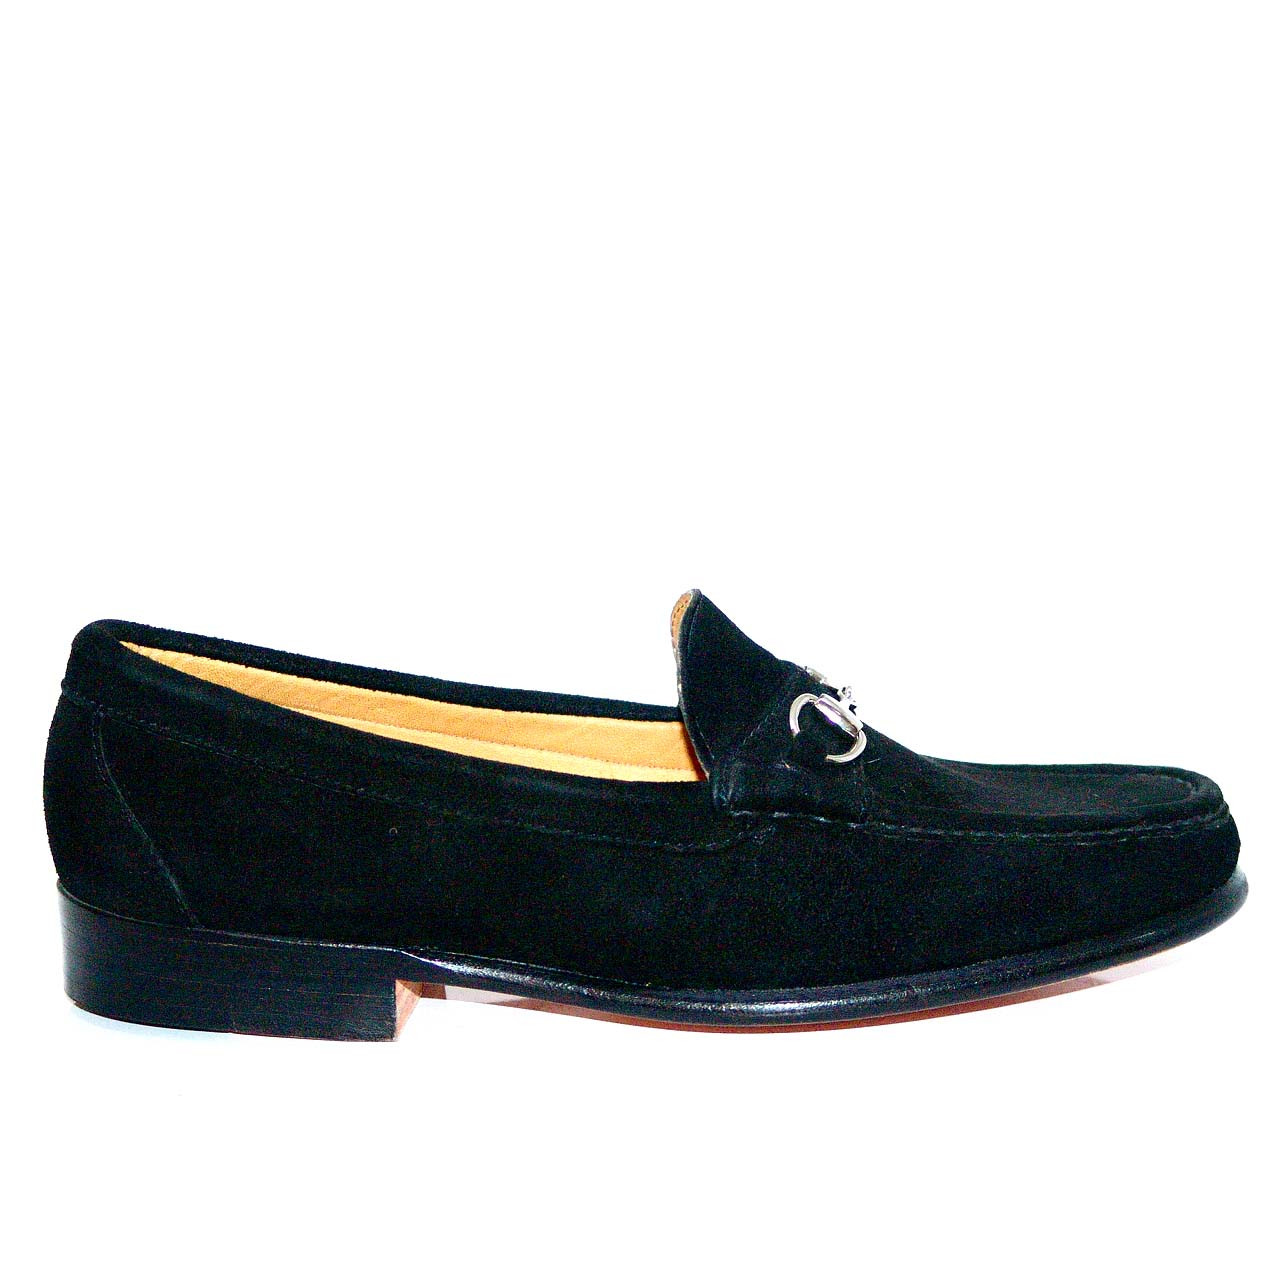 54447561b25 ... Alden Cape Cod Horse Bit Loafer H468 Black. Add to Cart Buy